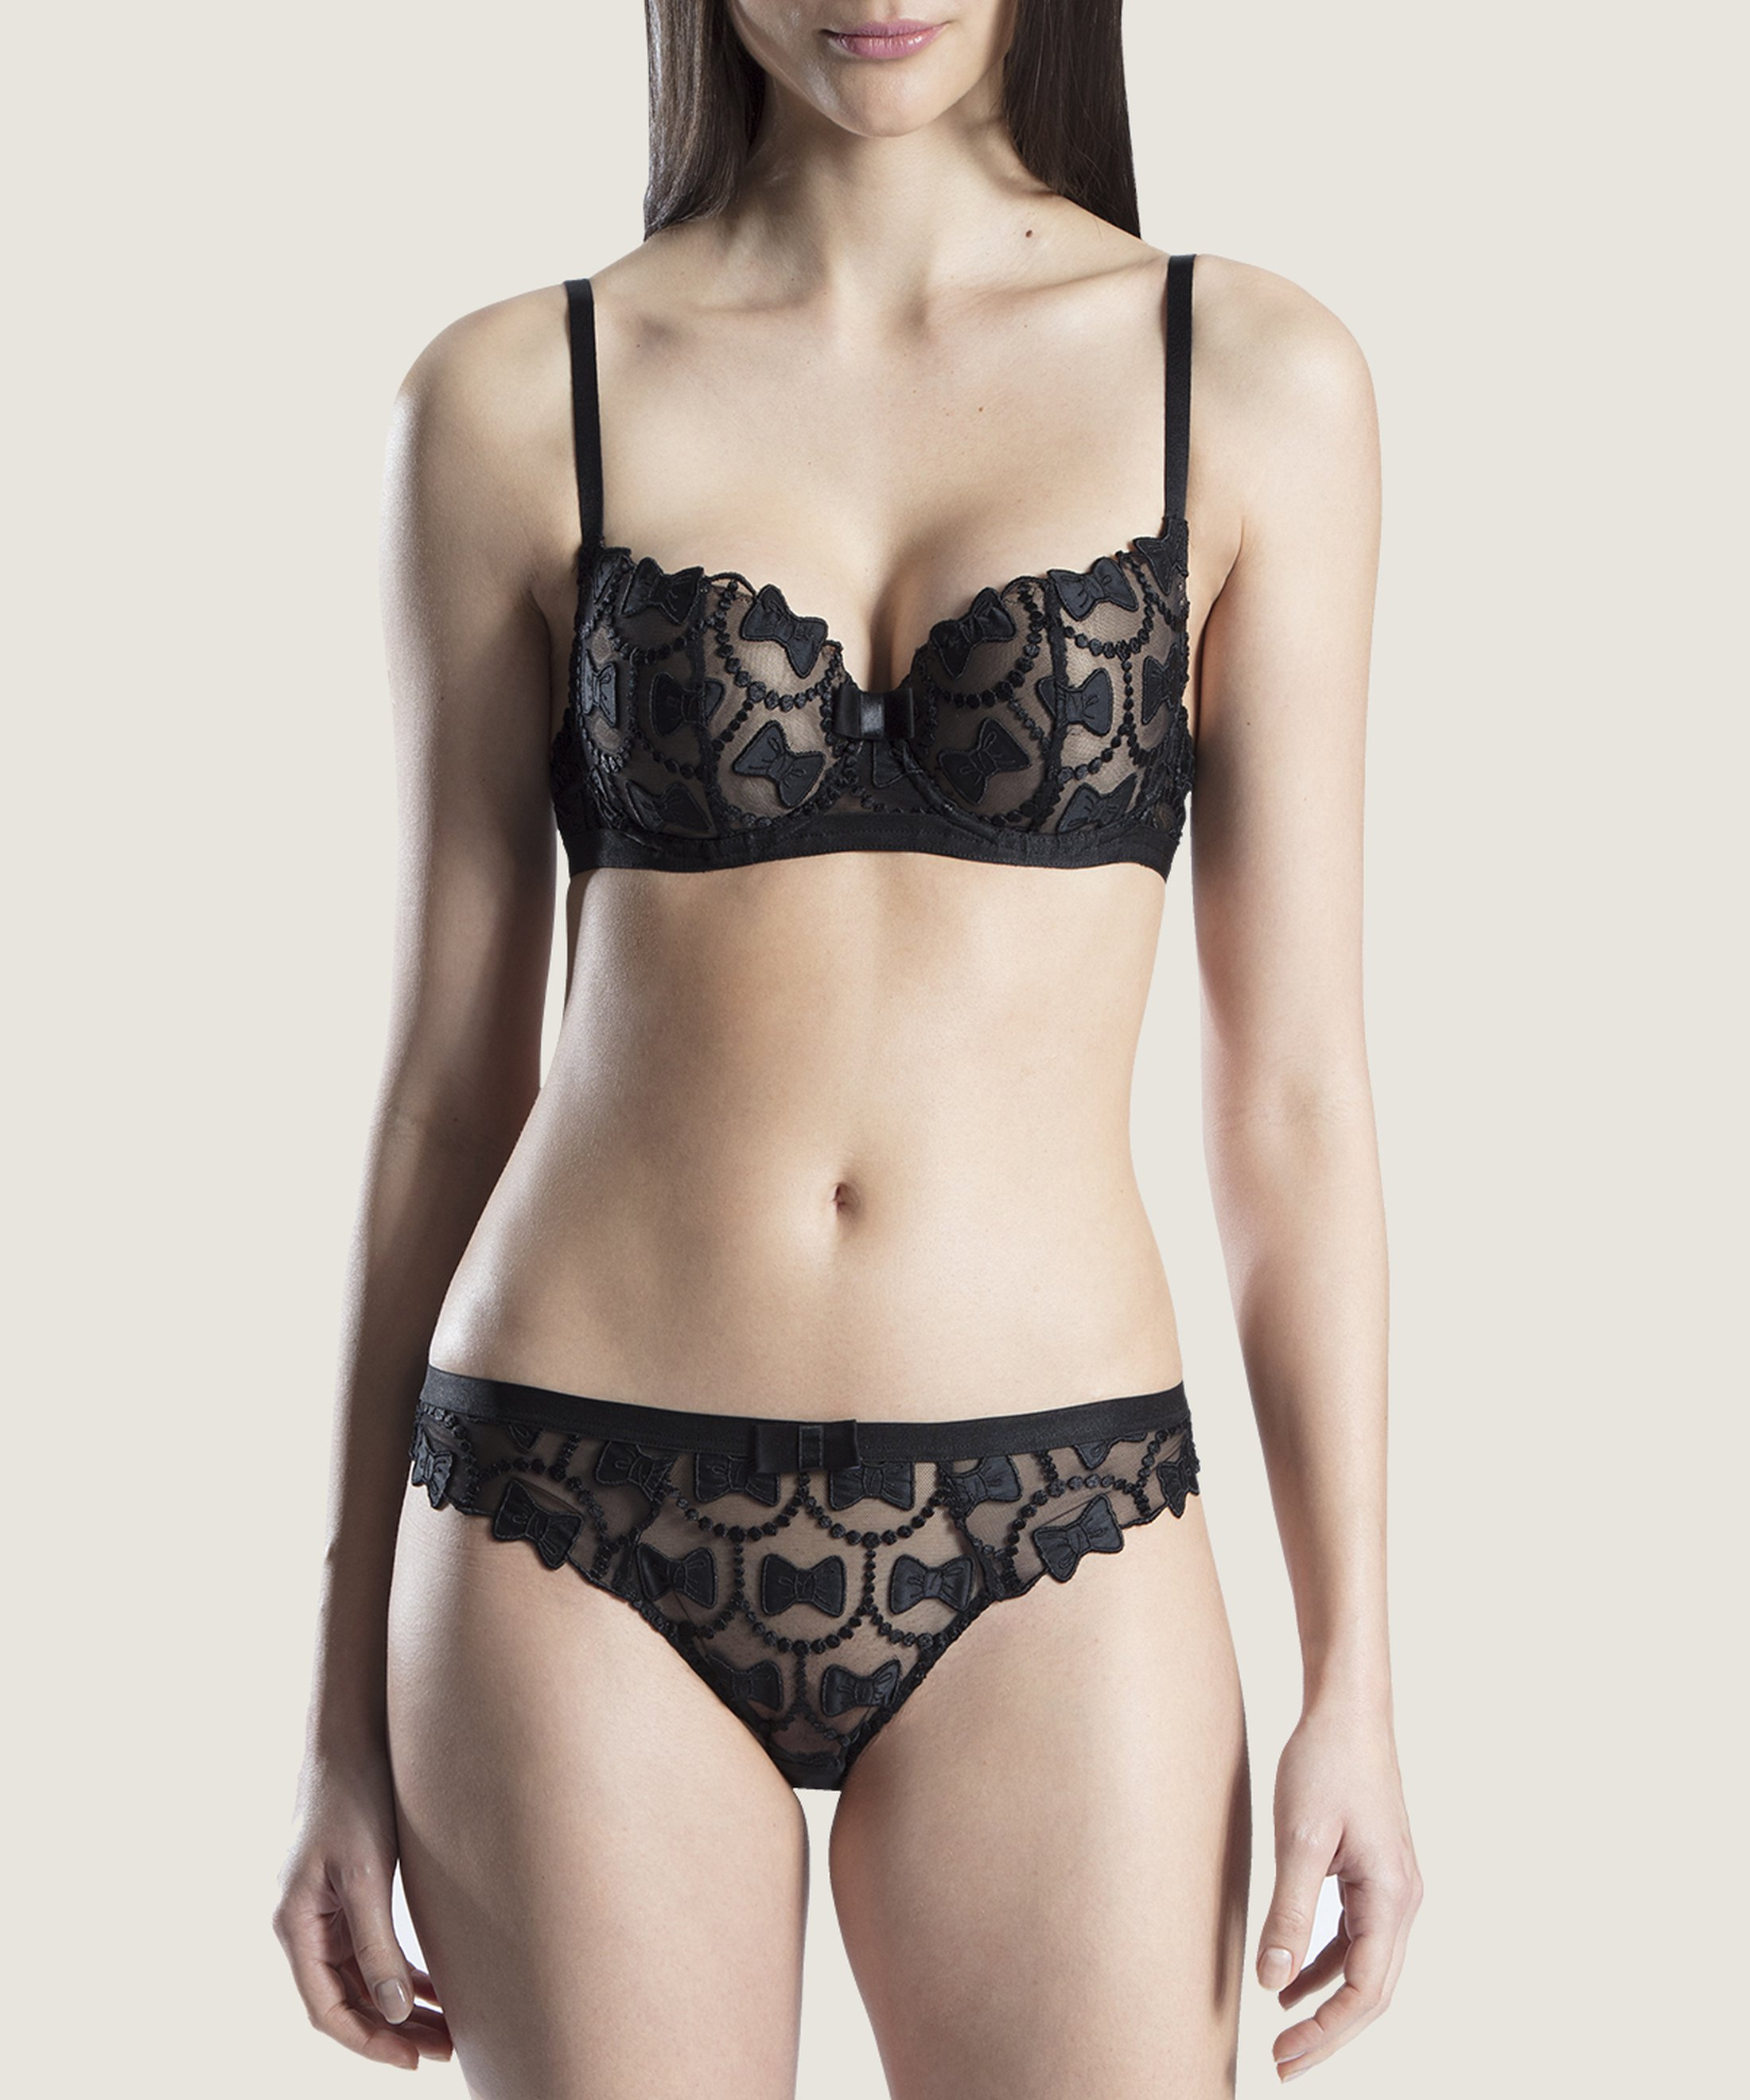 THE BOW COLLECTION Moulded Half-Cup Bra Soir   Aubade